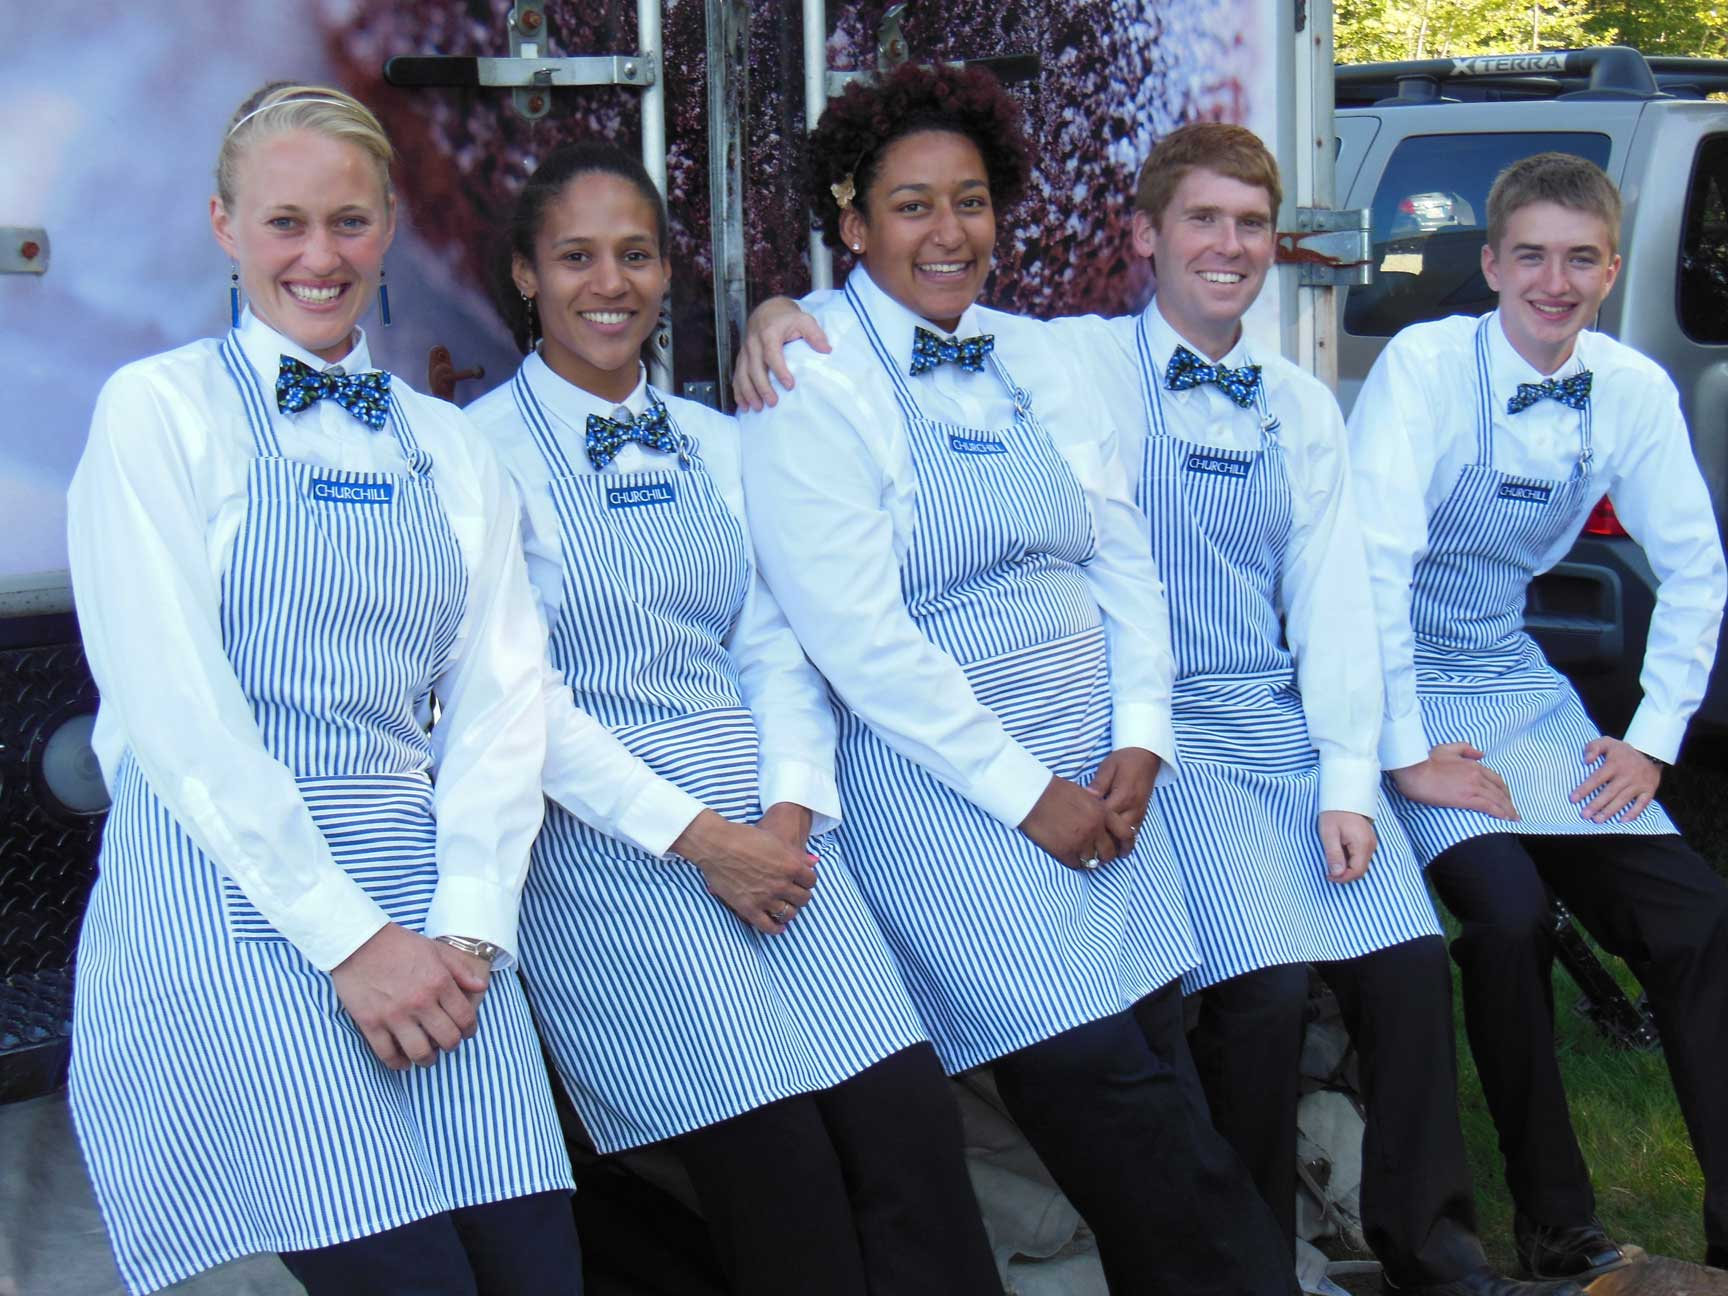 Our team of professional planners, chefs, bartenders, and servers, at beachfront wedding in Cape Elizabeth, Maine.